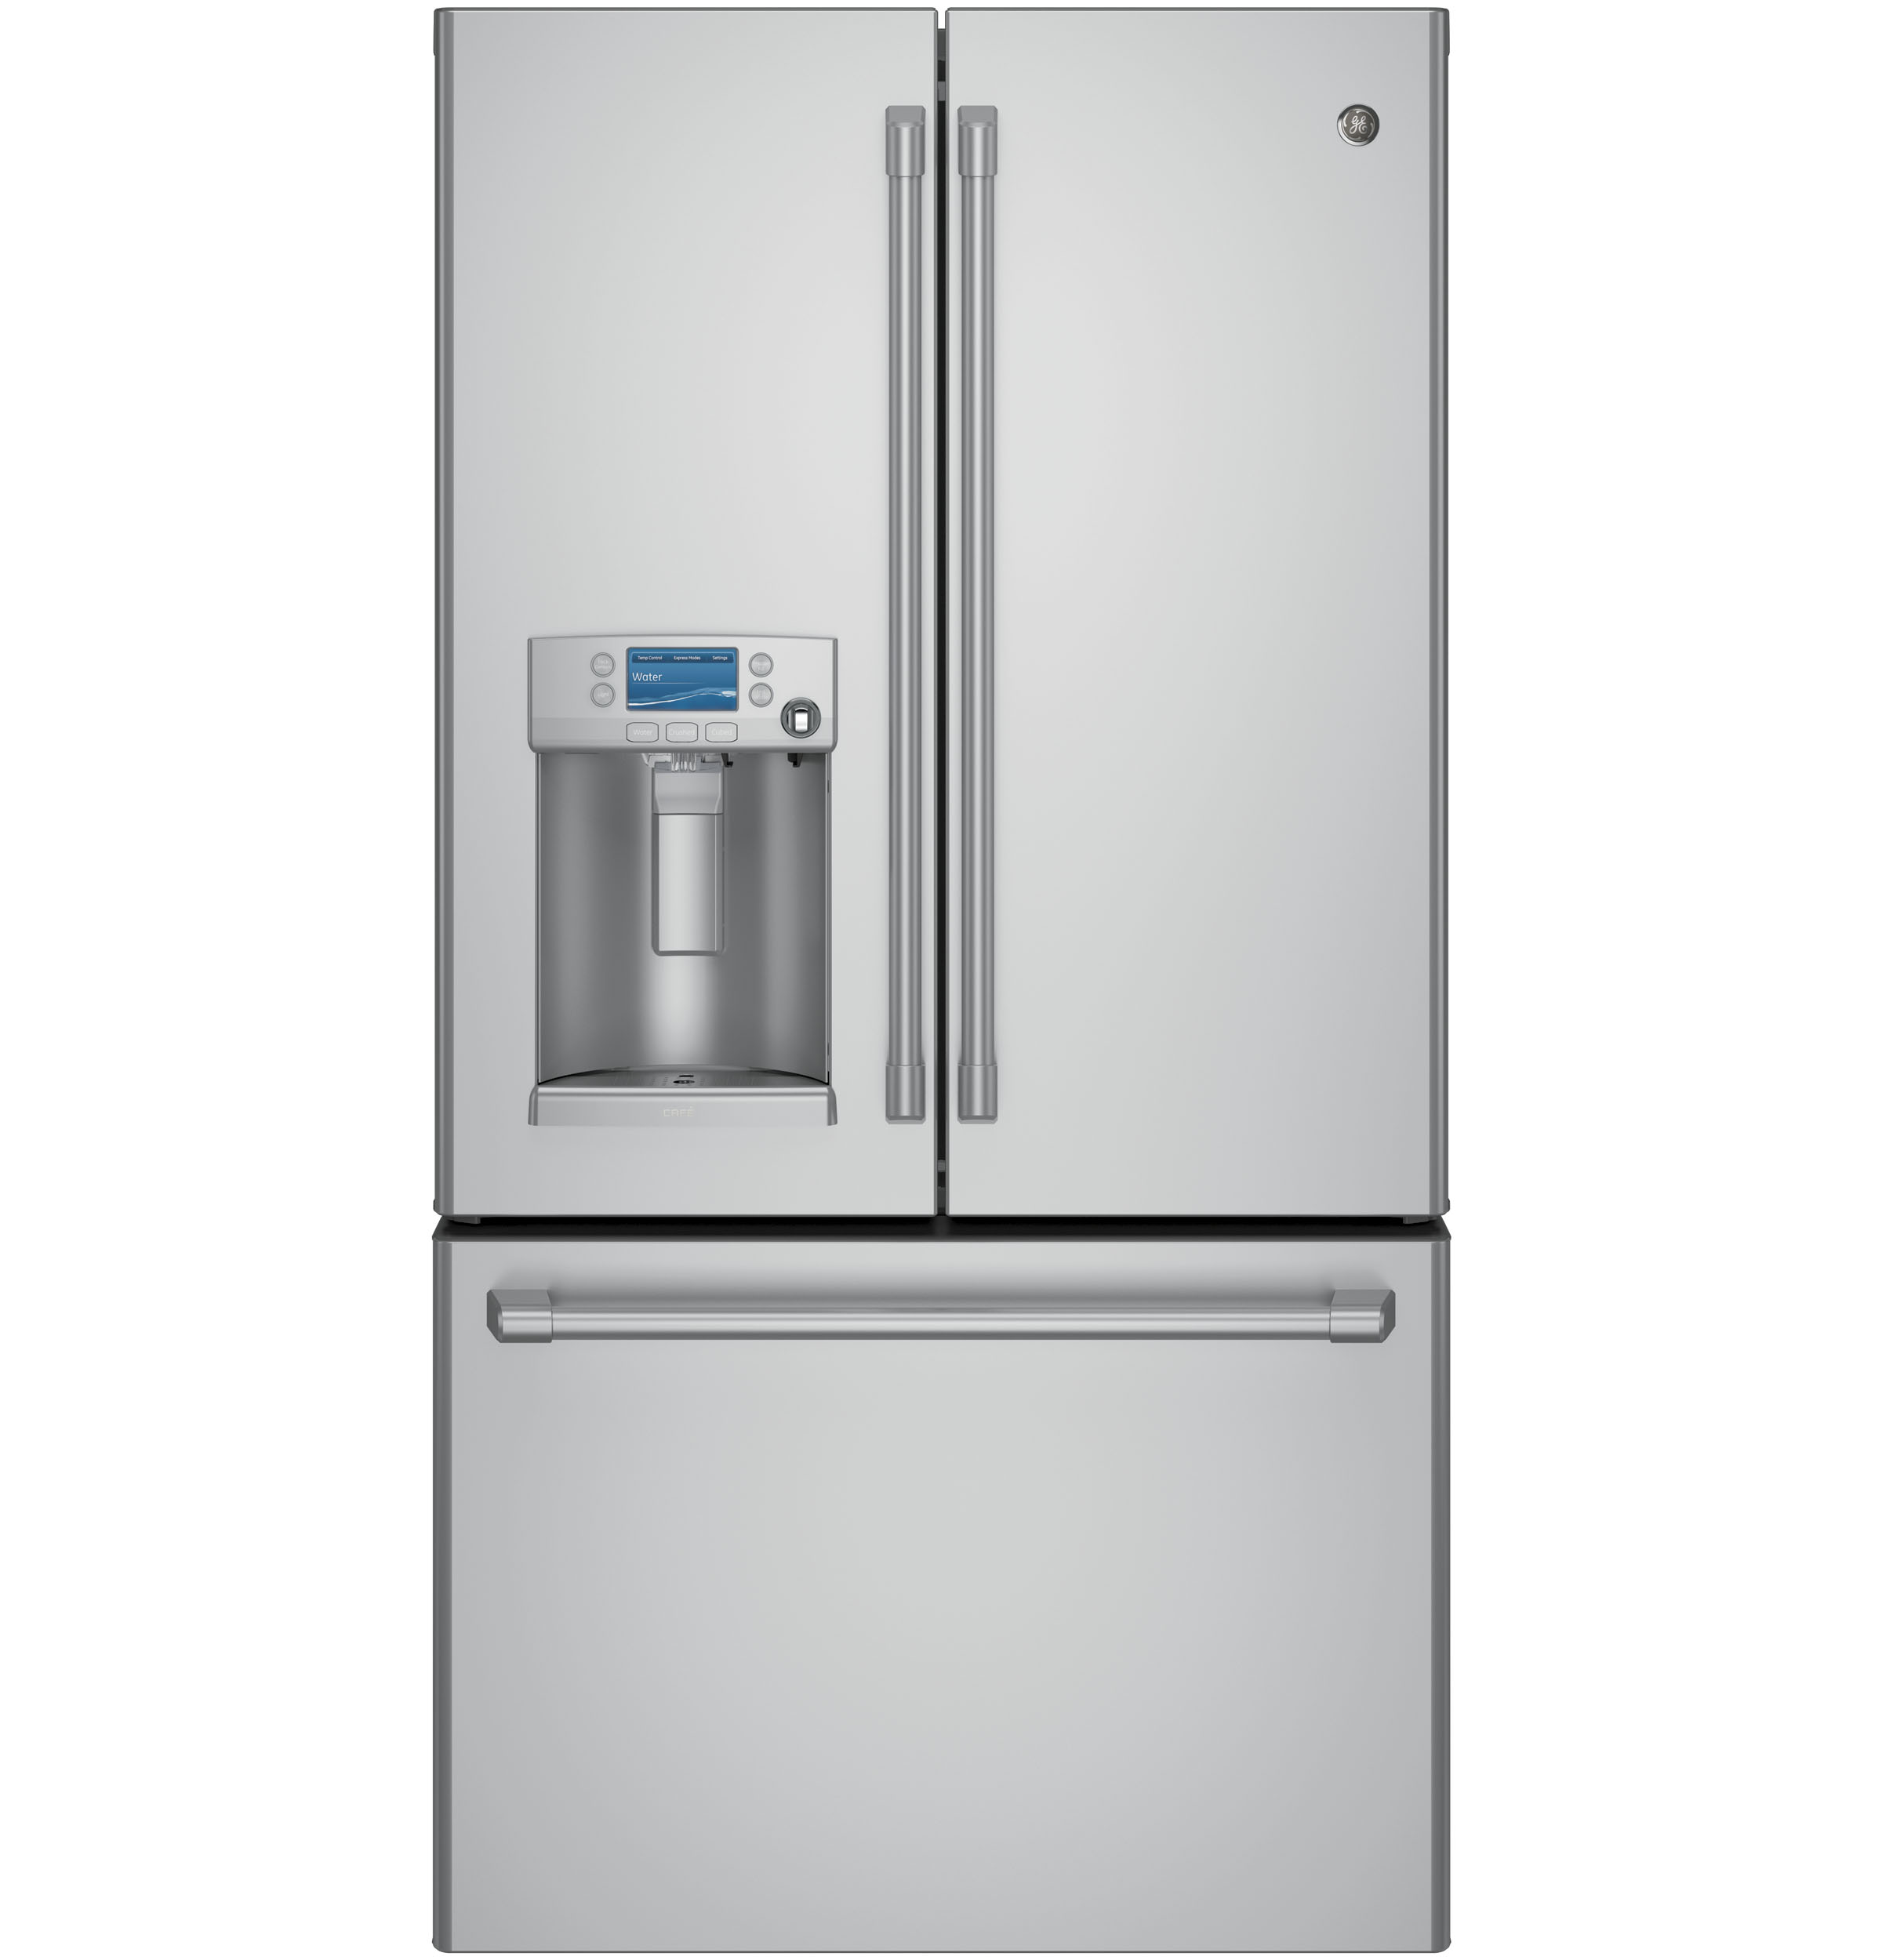 GE Cafe GE Café™ Series ENERGY STAR® 27.8 Cu. Ft. French-Door Refrigerator with Keurig® K-Cup® Brewing System